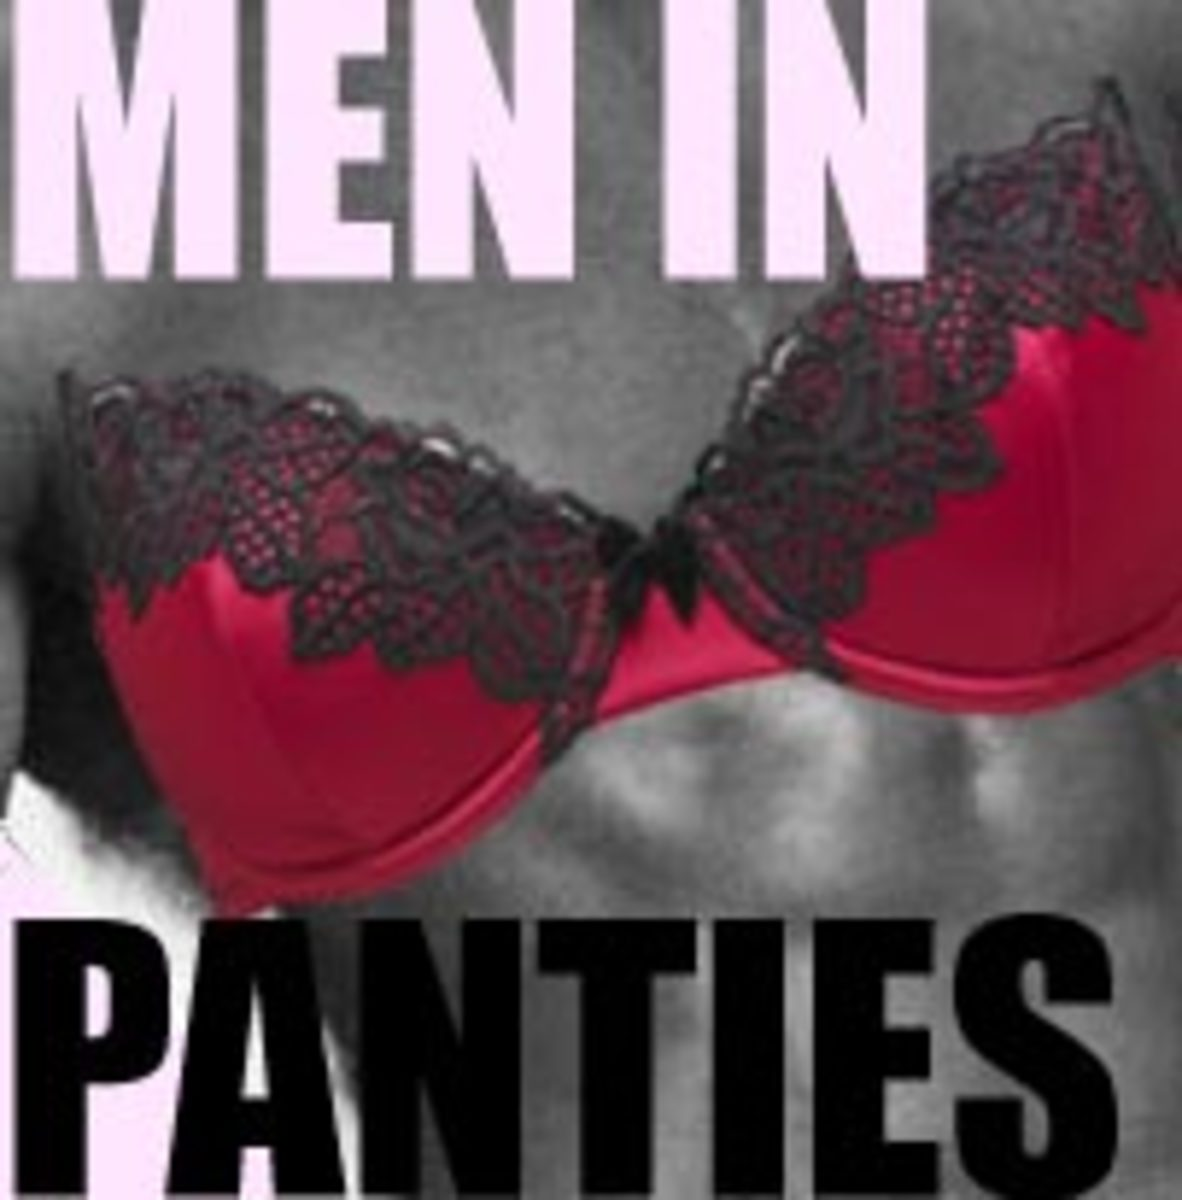 Why I Like Wearing Womans Panties Stories 89